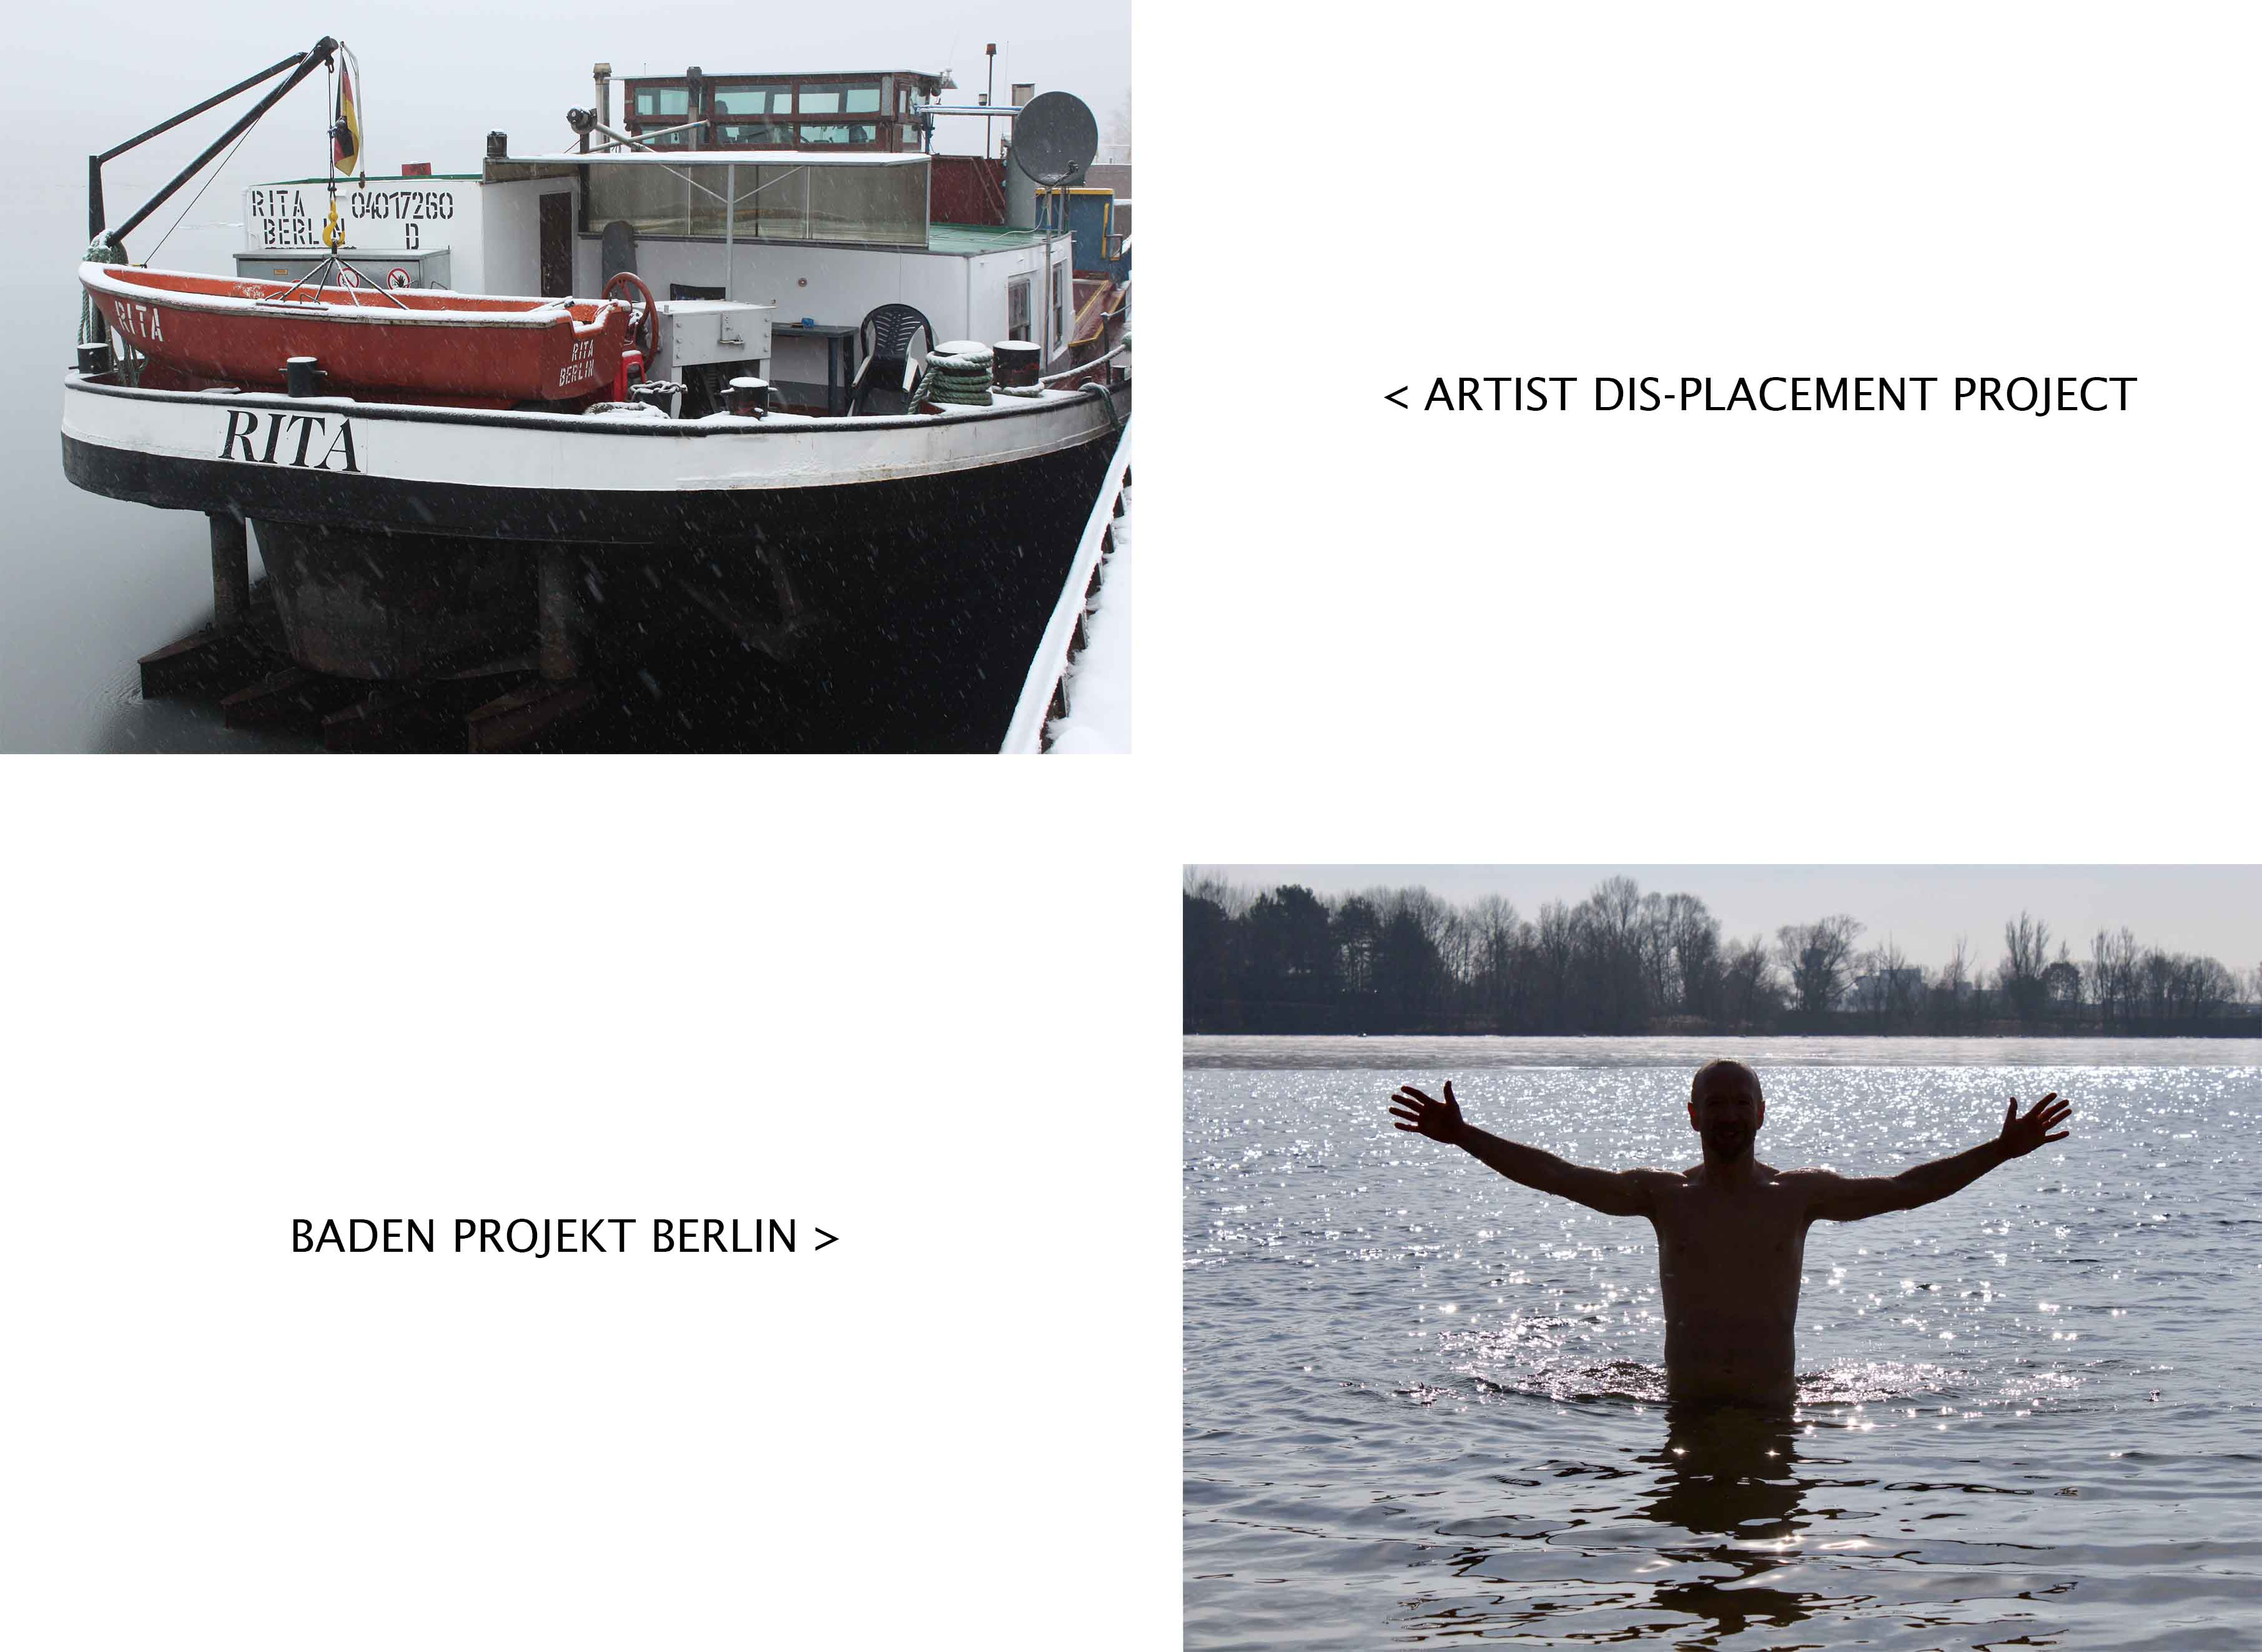 💥💥 FINAL EXHIBITION @ ZK/U, BERLIN 💥💥  22nd March 2018 / 19:00 – 22:30  Baden Projekt Berlin showcases a new work featuring three notorious Flughafensee ice swimmers - a collaboration with Matthew Charles Robinson.  I'll also be screening #Rita1931, my Artist Dis-Placement video adventure aboard a scrap metal ship and at TSR metal recycling.   Warmest wishes,  Ben und Baden Projekt Berlin